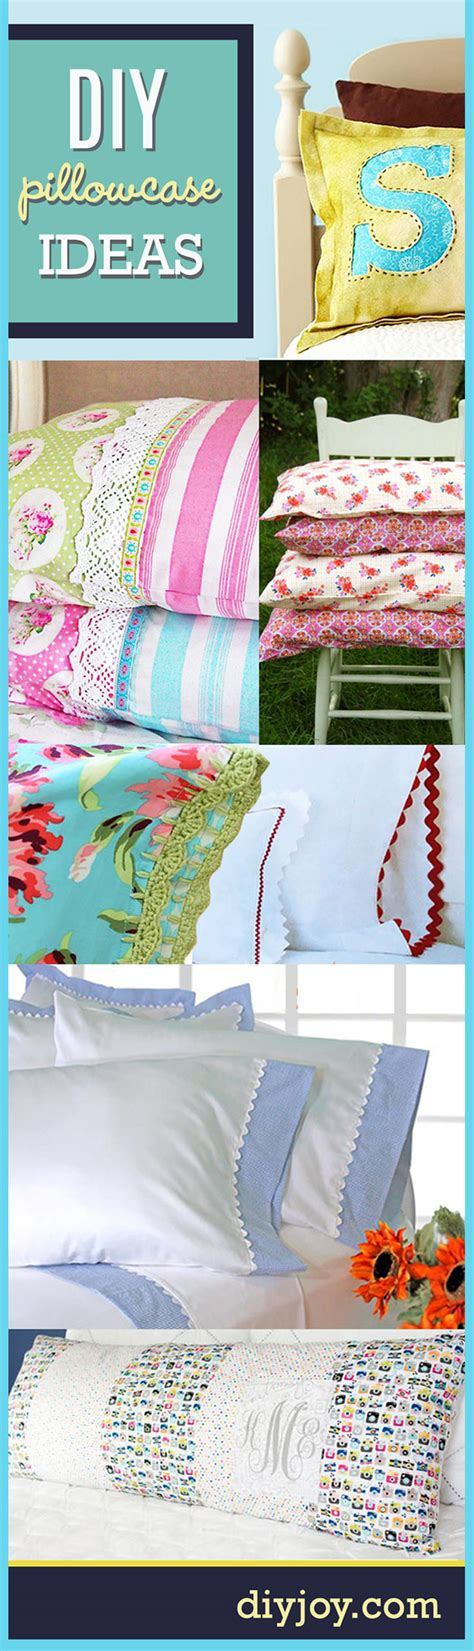 sewing projects home decor sewing projects for the home diy pillowcase ideas diy joy